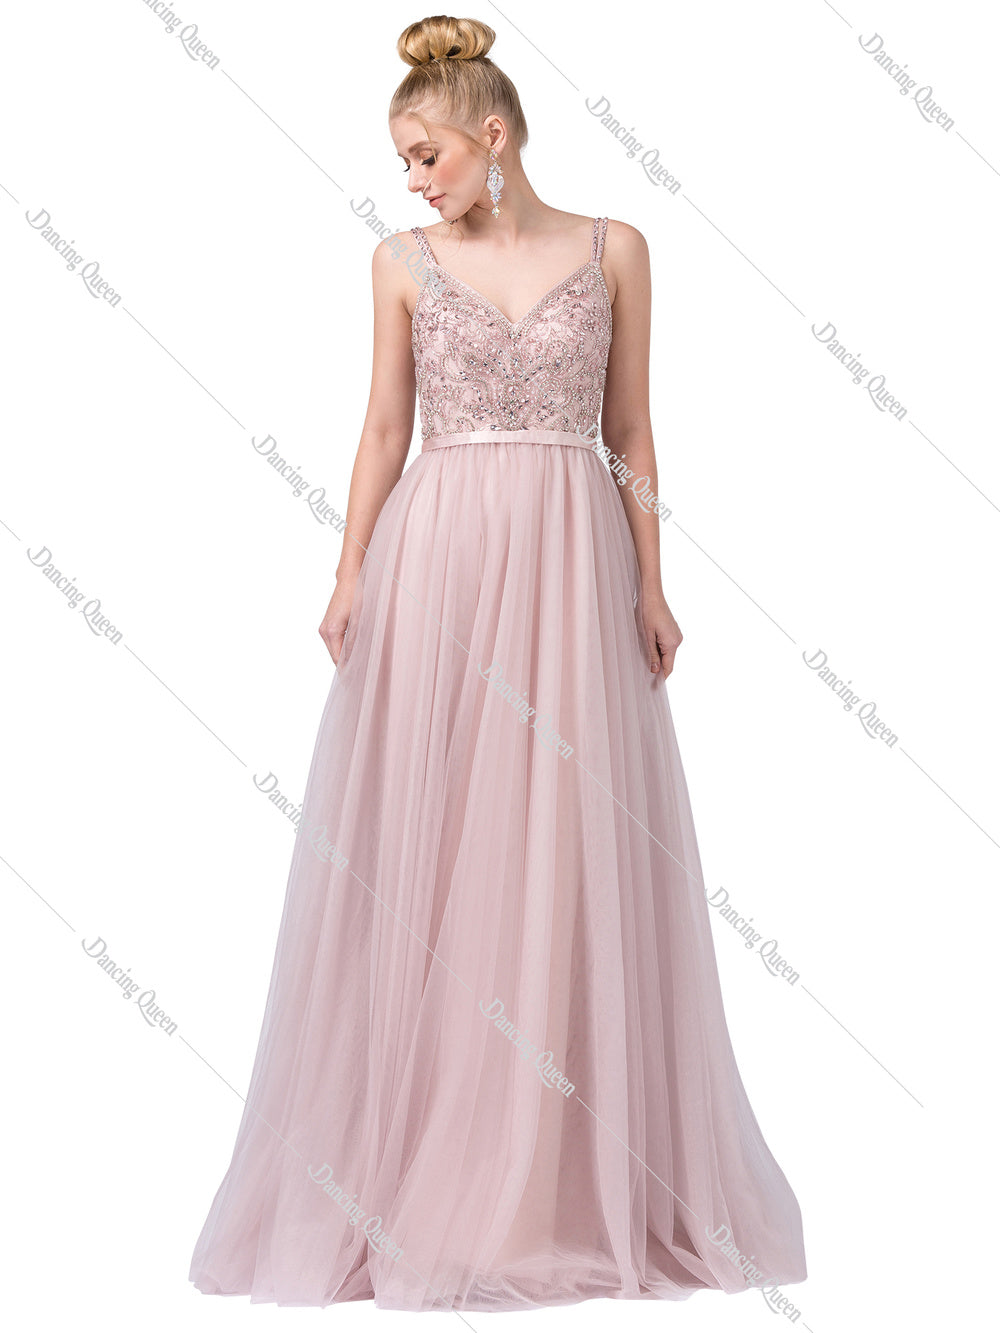 DQ 2519 - A-Line Bead Embellished V-neck Bodice with Tulle Skirt - Diggz Prom